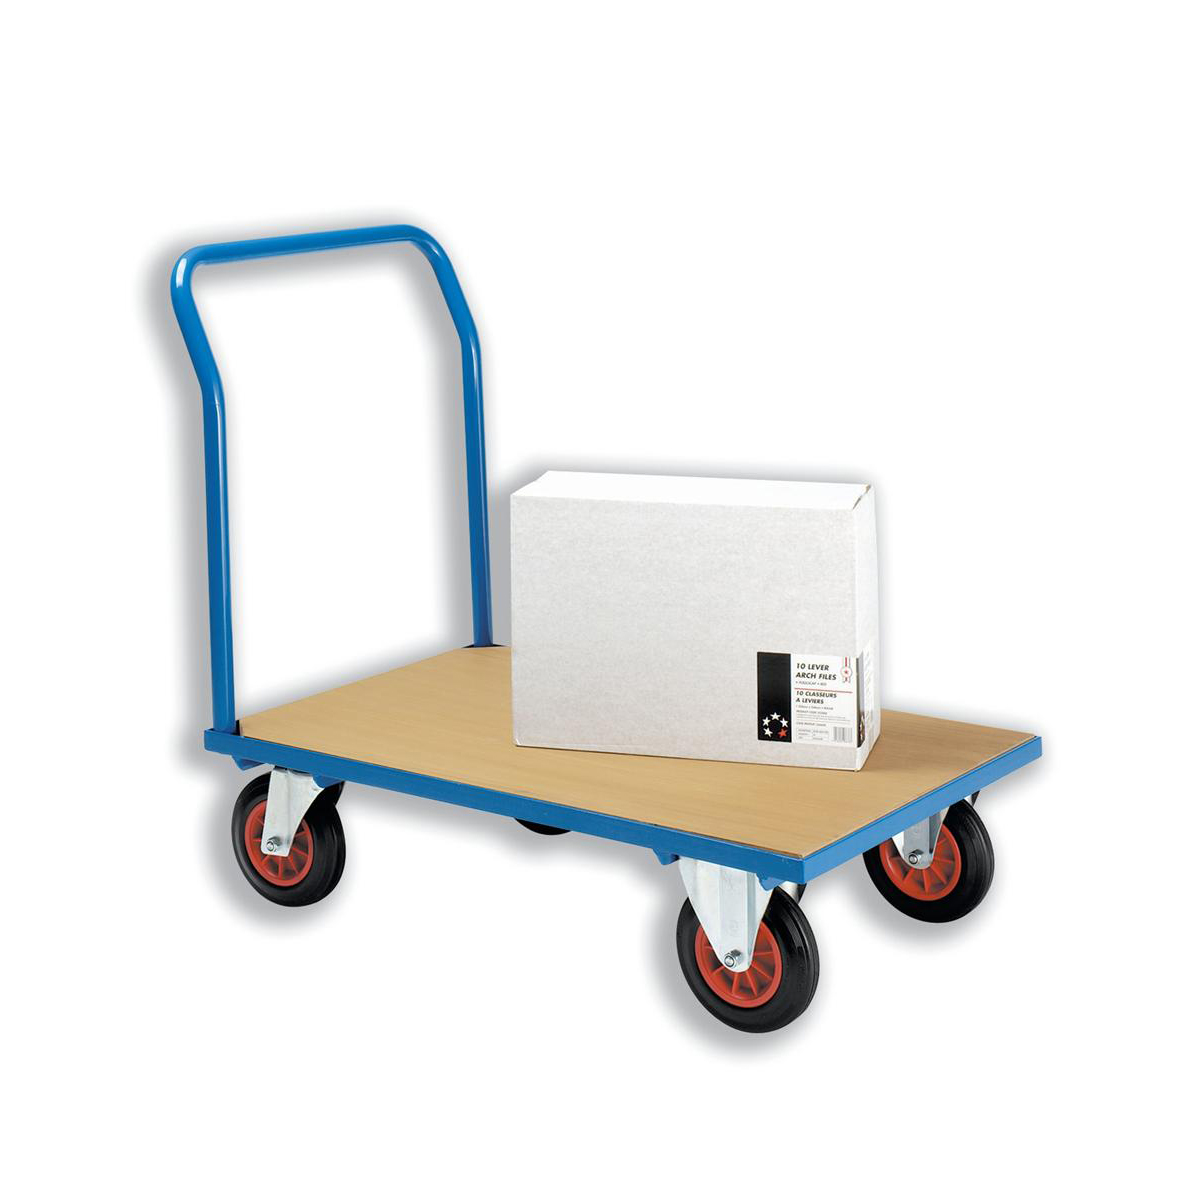 Platform Trucks 5 Star Facilities Platform Truck Heavy-duty Capacity 500kg Baseboard W1000xD700mm Blue